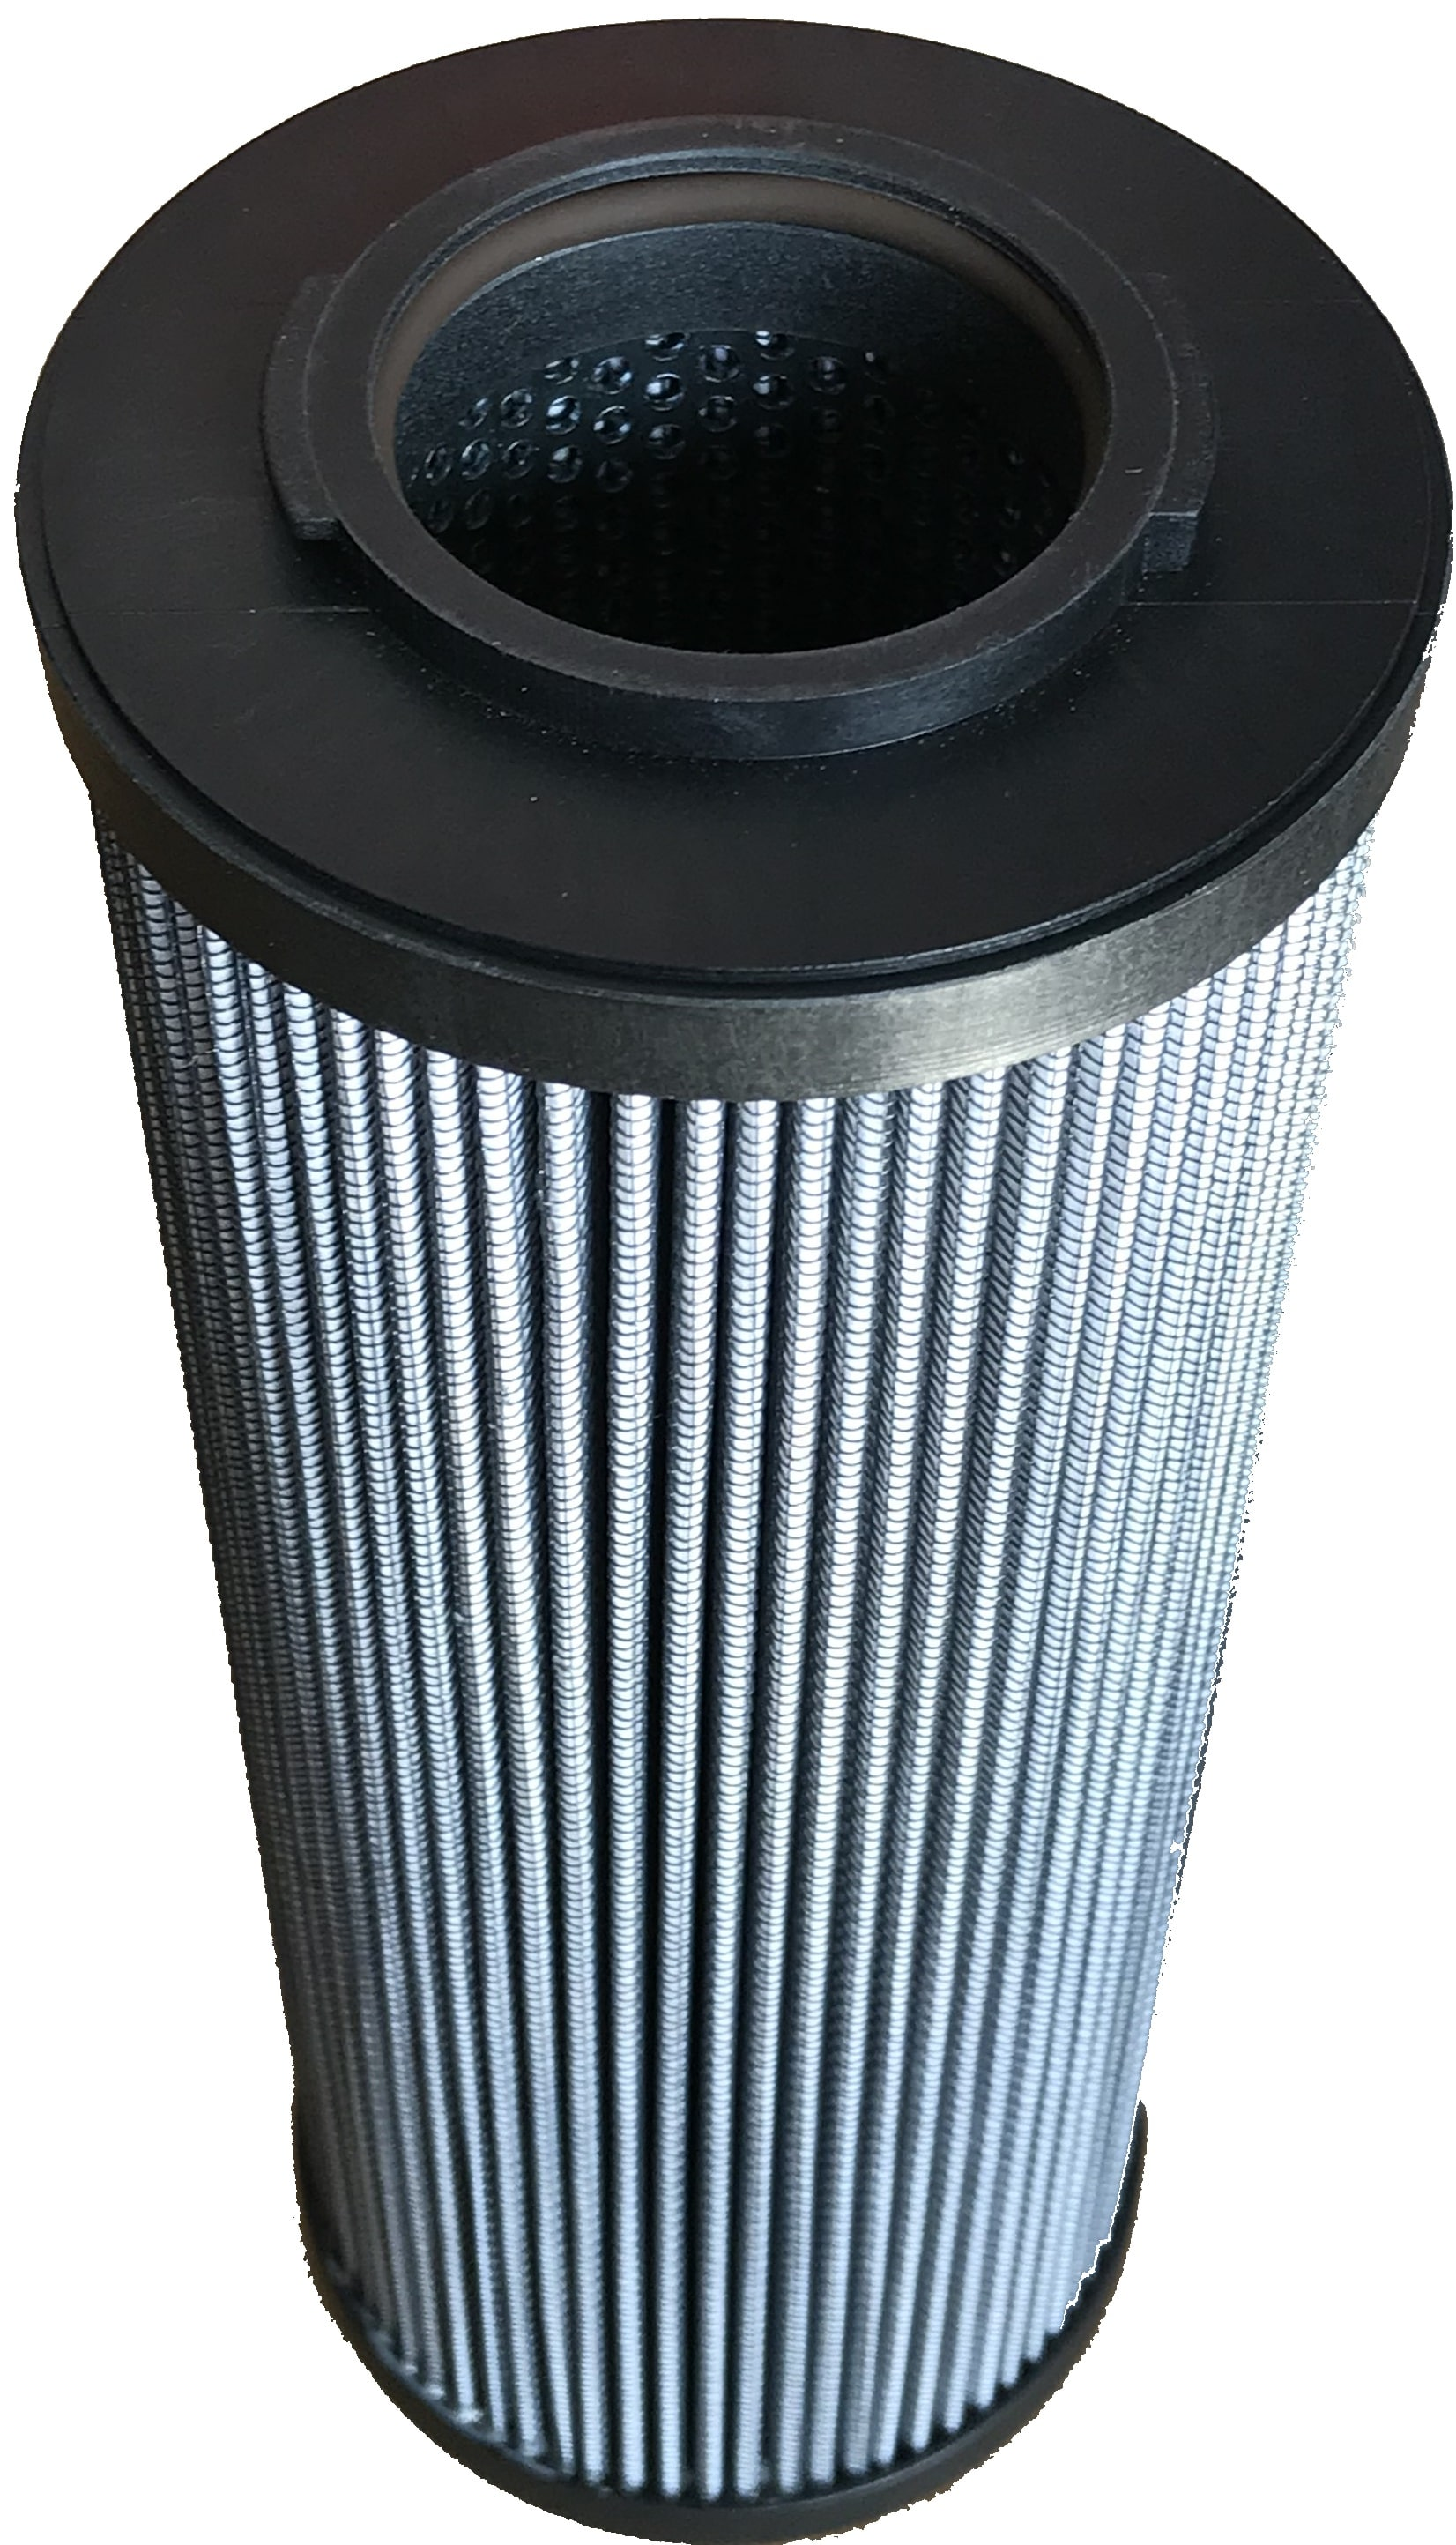 Replacement Elements And Filters